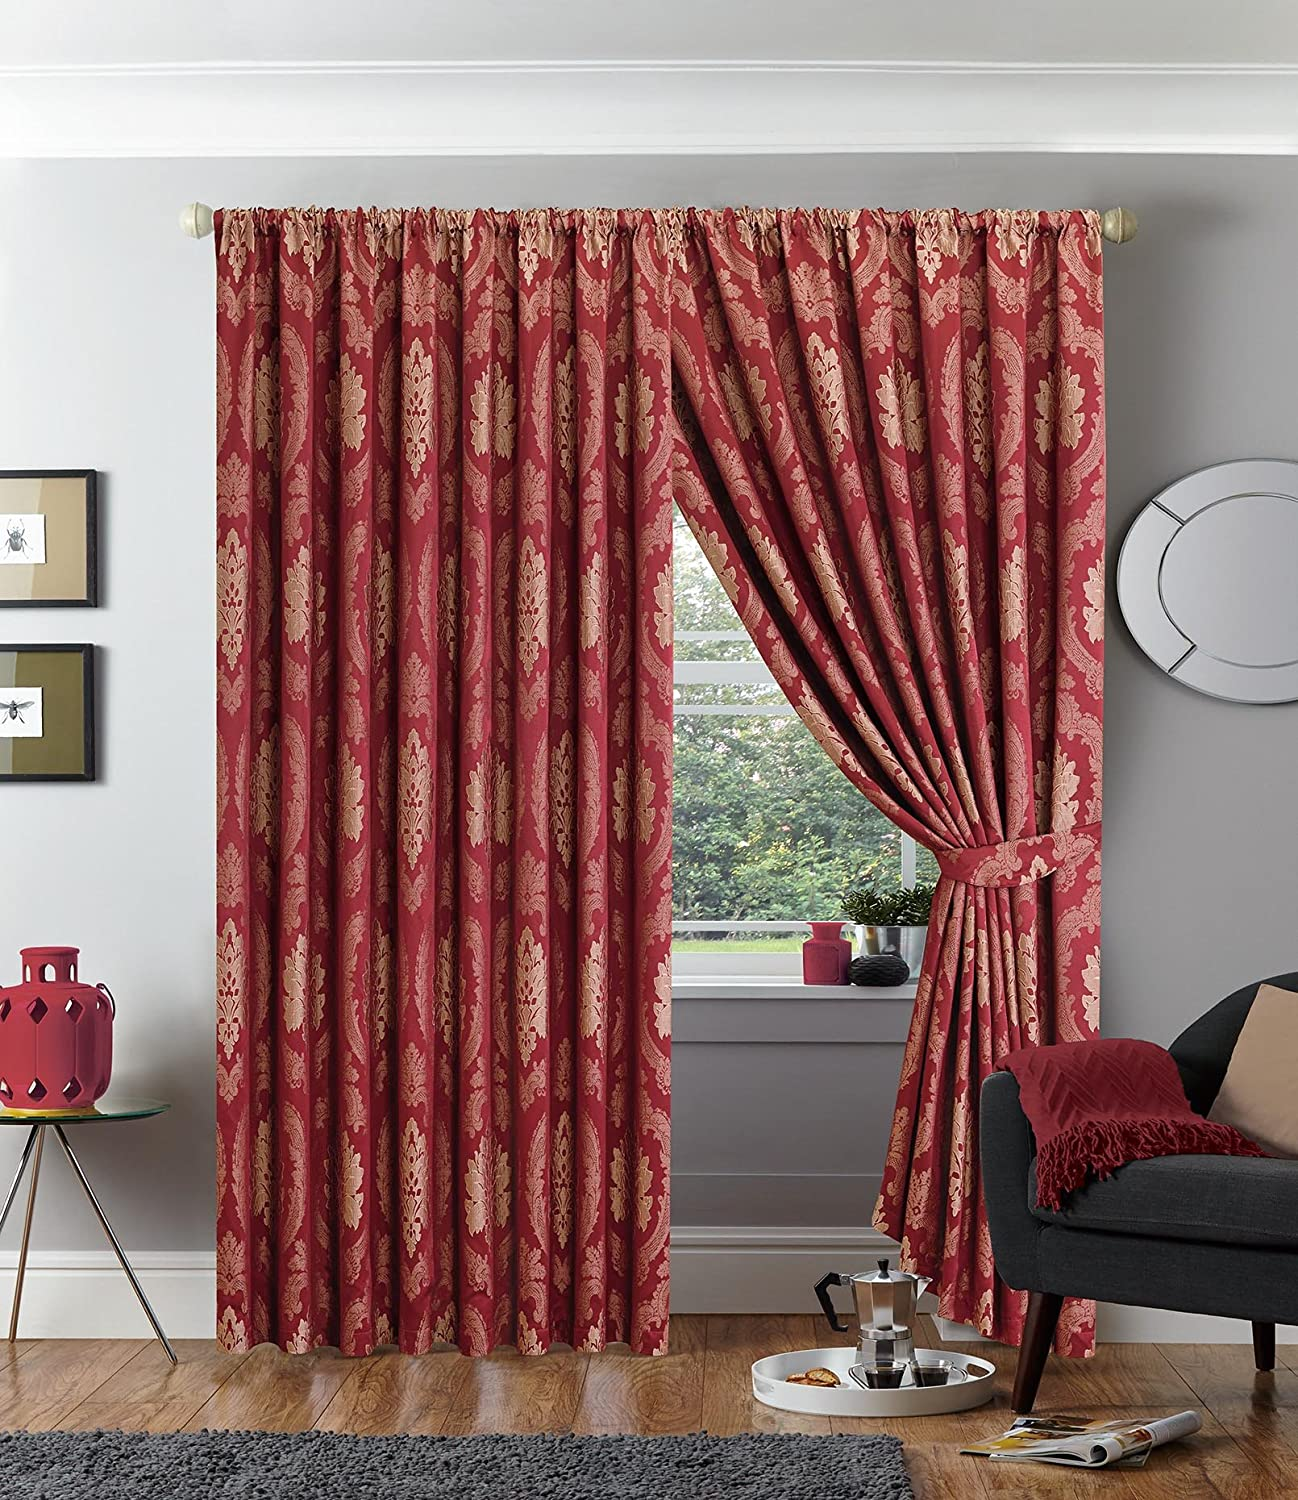 Maroon Curtains For Living Room Fully Lined Pencil Pleat Luxury Jacquard Ready Made Curtain All